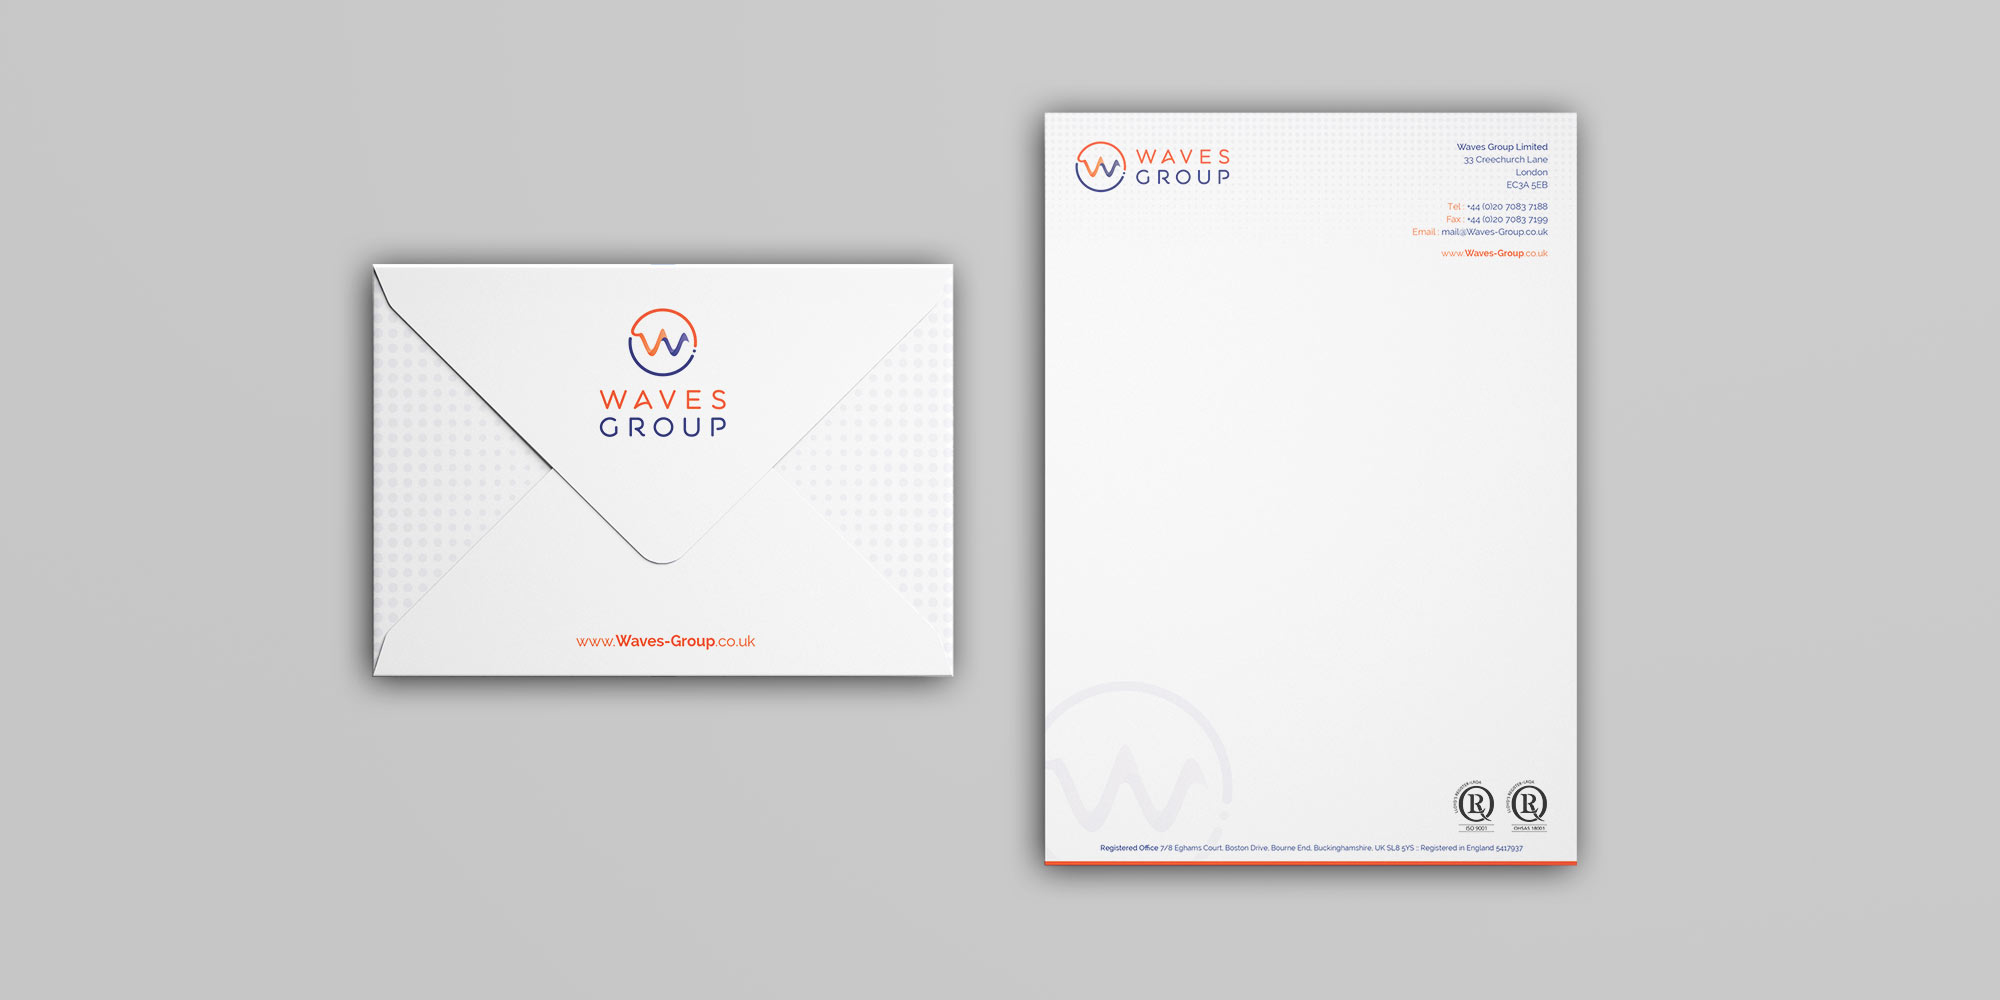 Waves Group Stationery Design